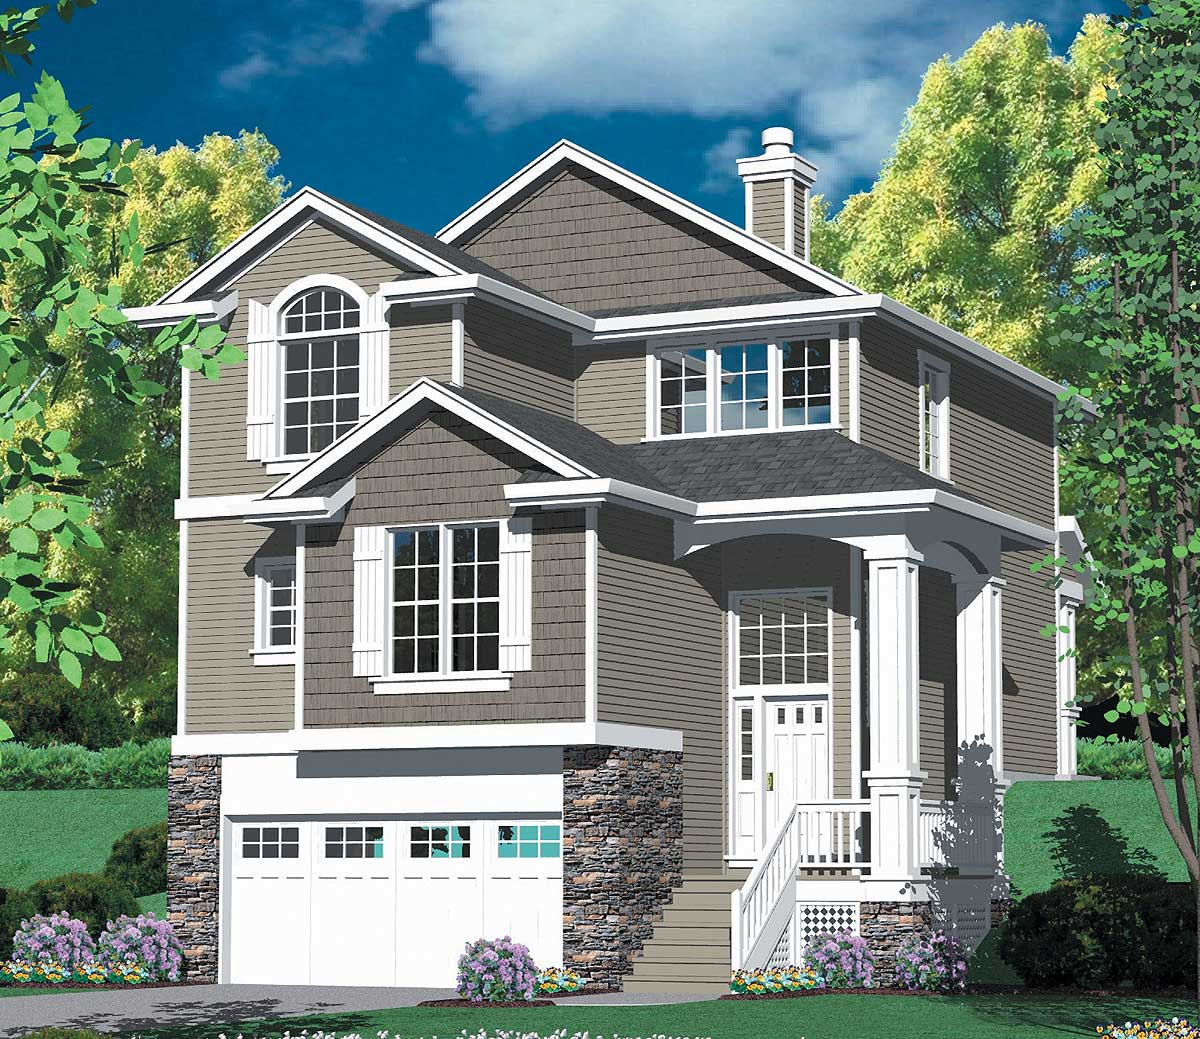 Multi-level Craftsman Plan - 69296AM